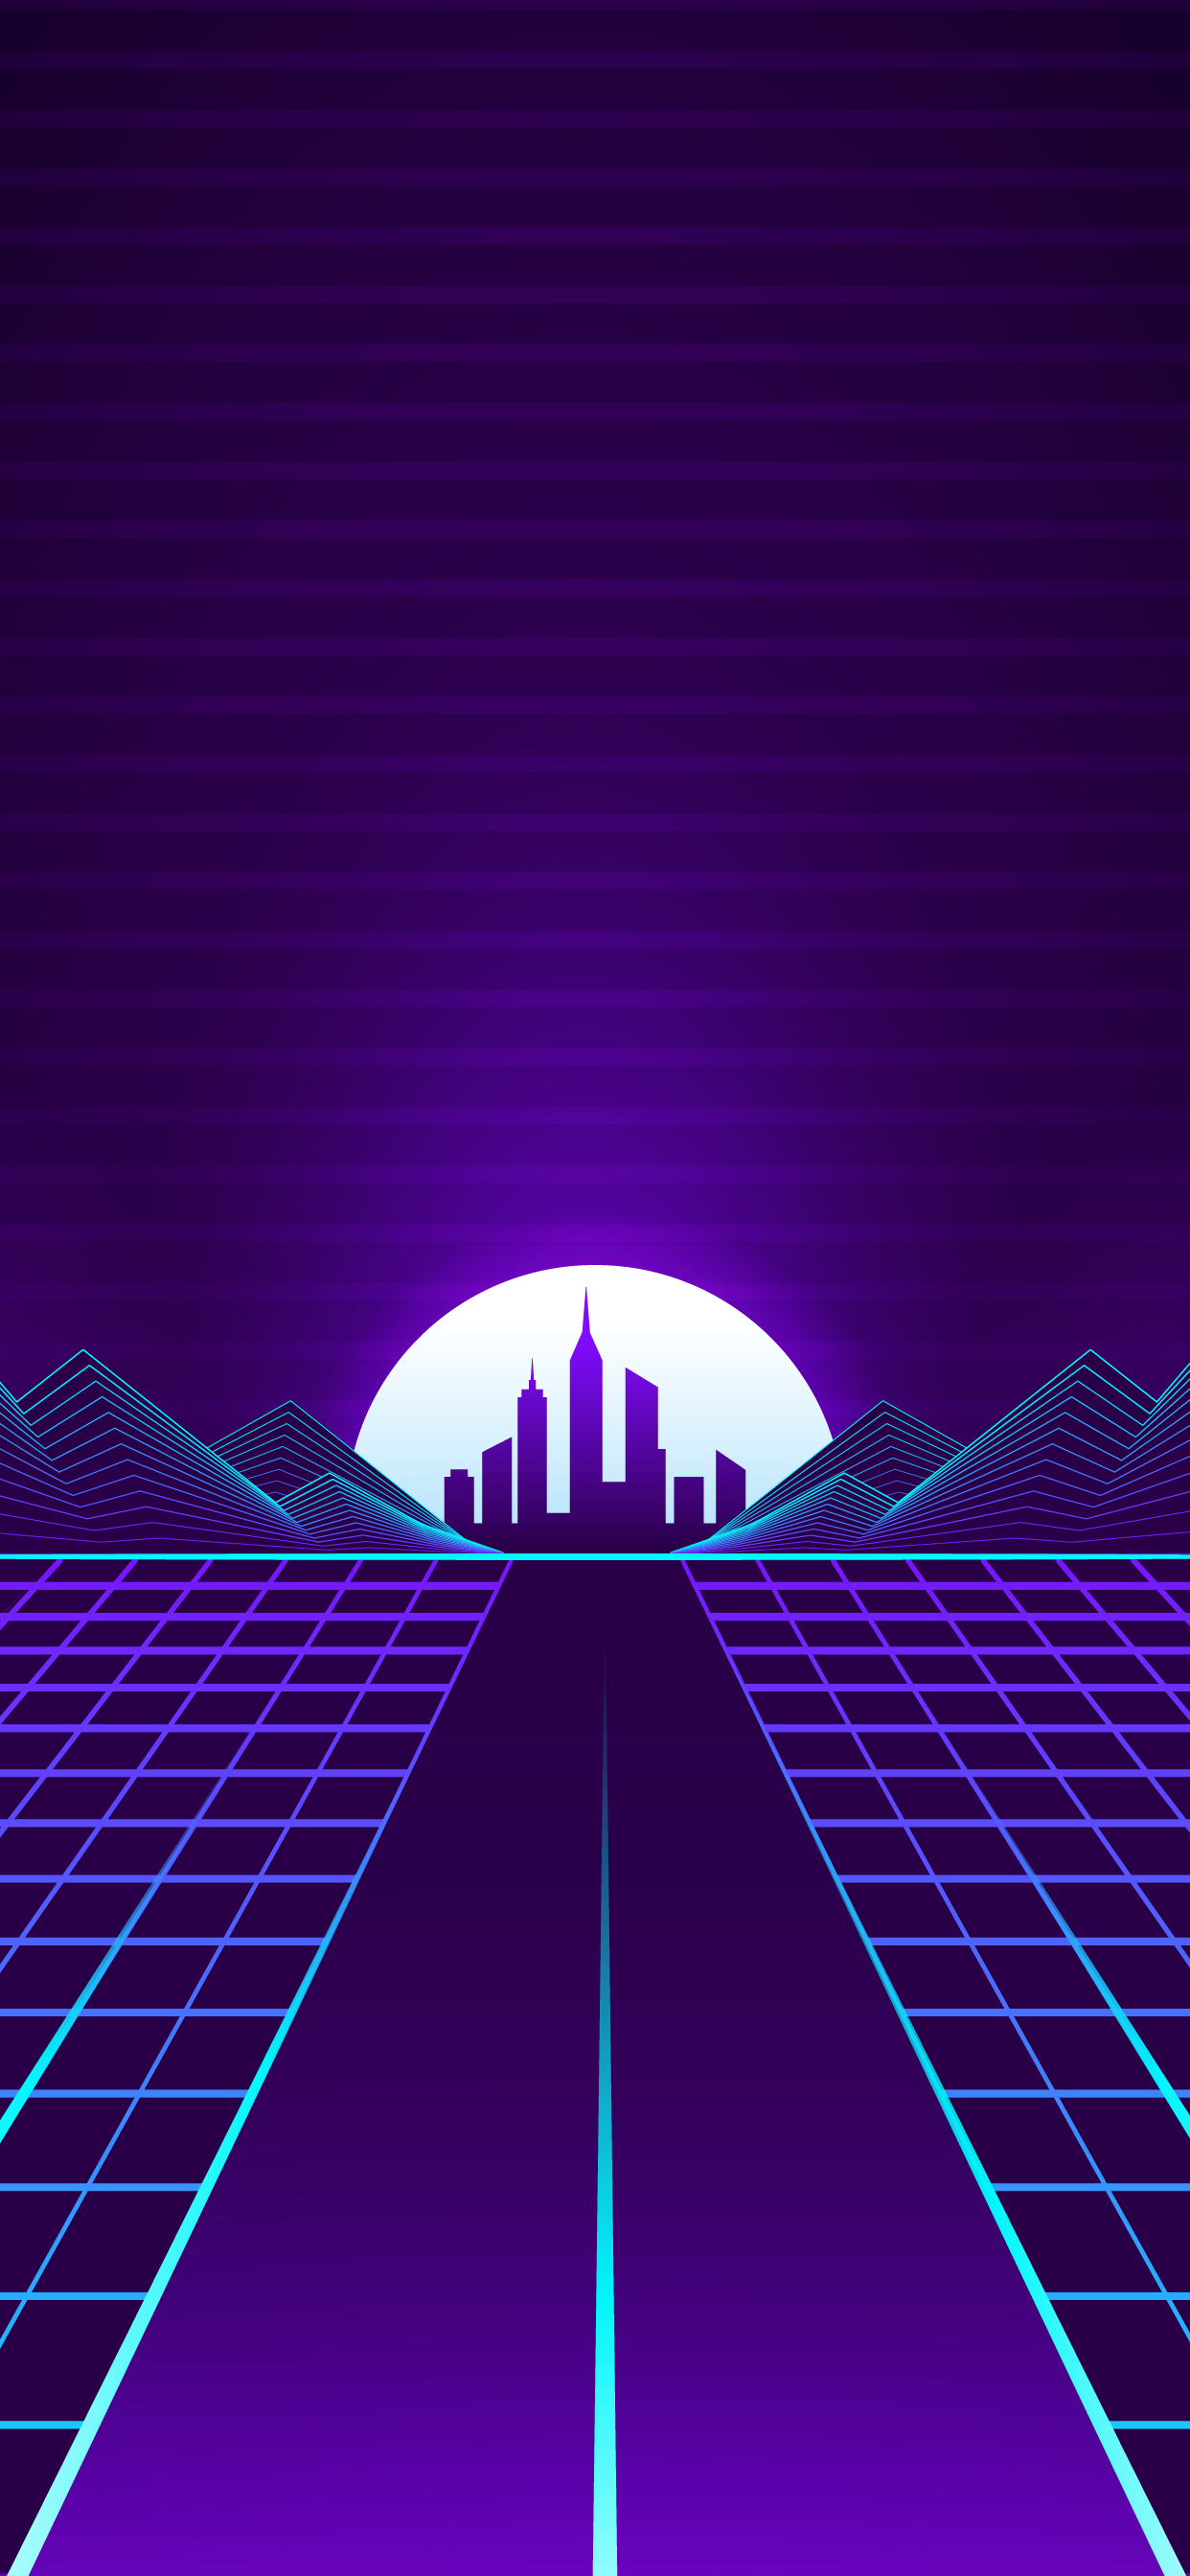 Cool outrun retro wave wallpaper hd for mobile phone